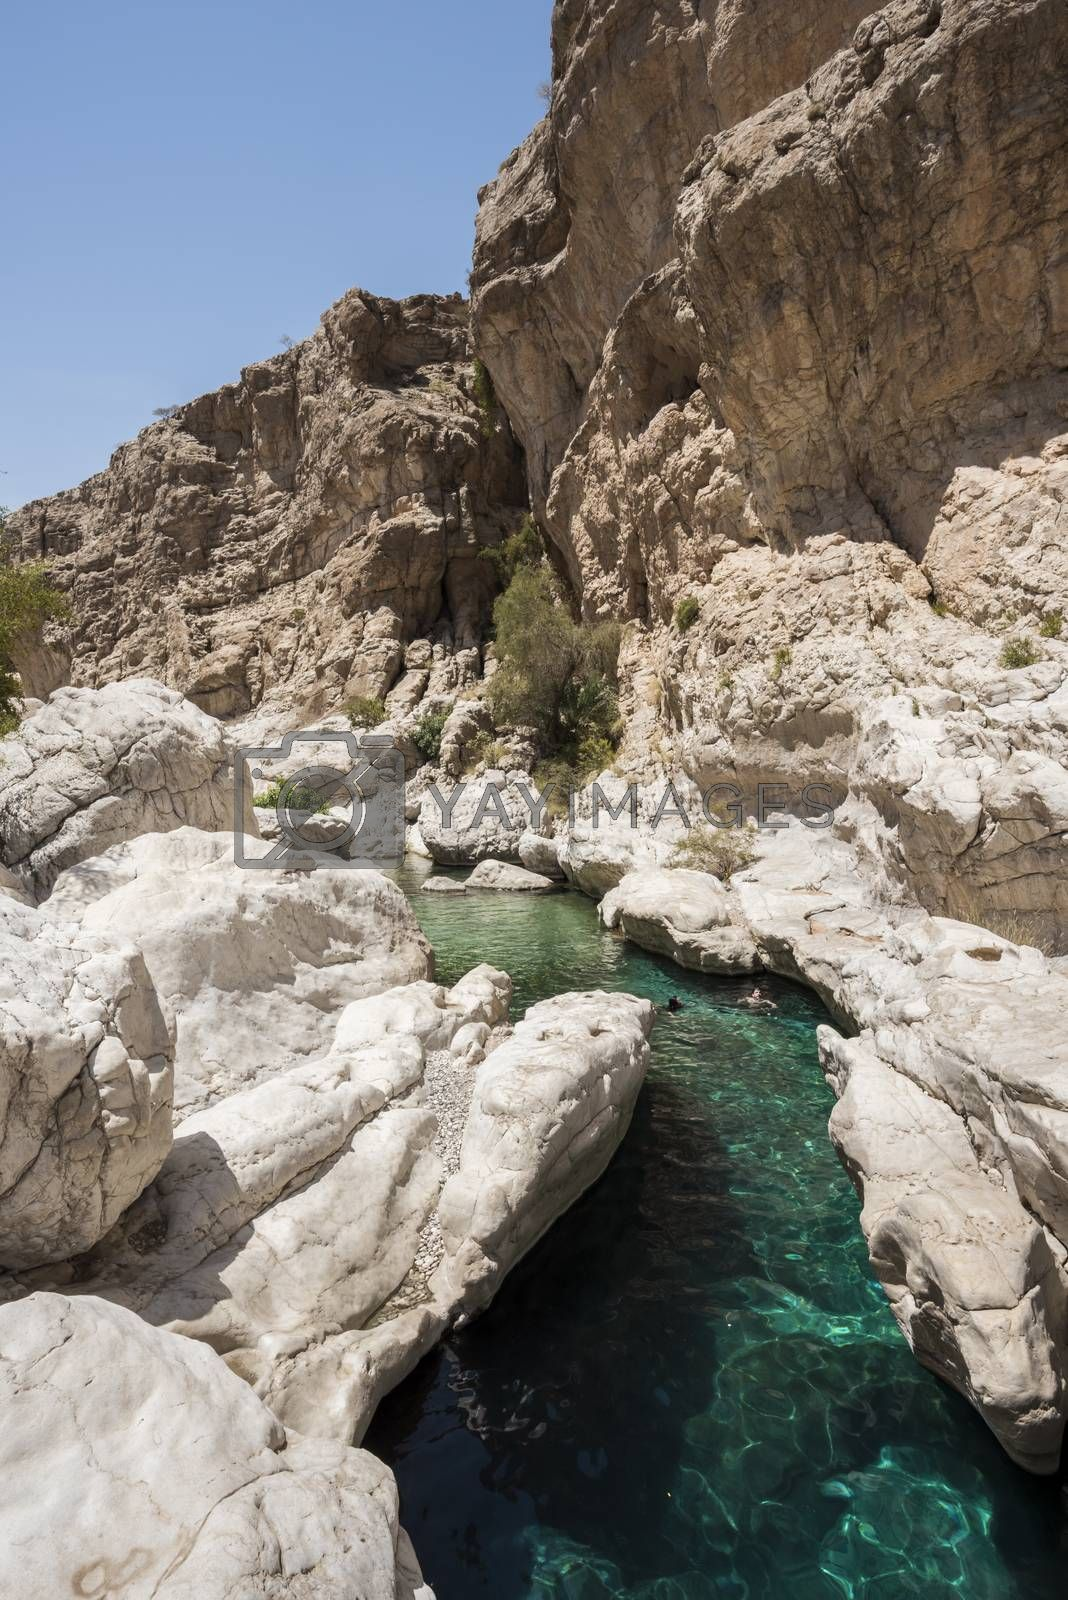 People swimming in the clear turquoise river water of Wadi Bani Khalid, sultanate of Oman, Middle East